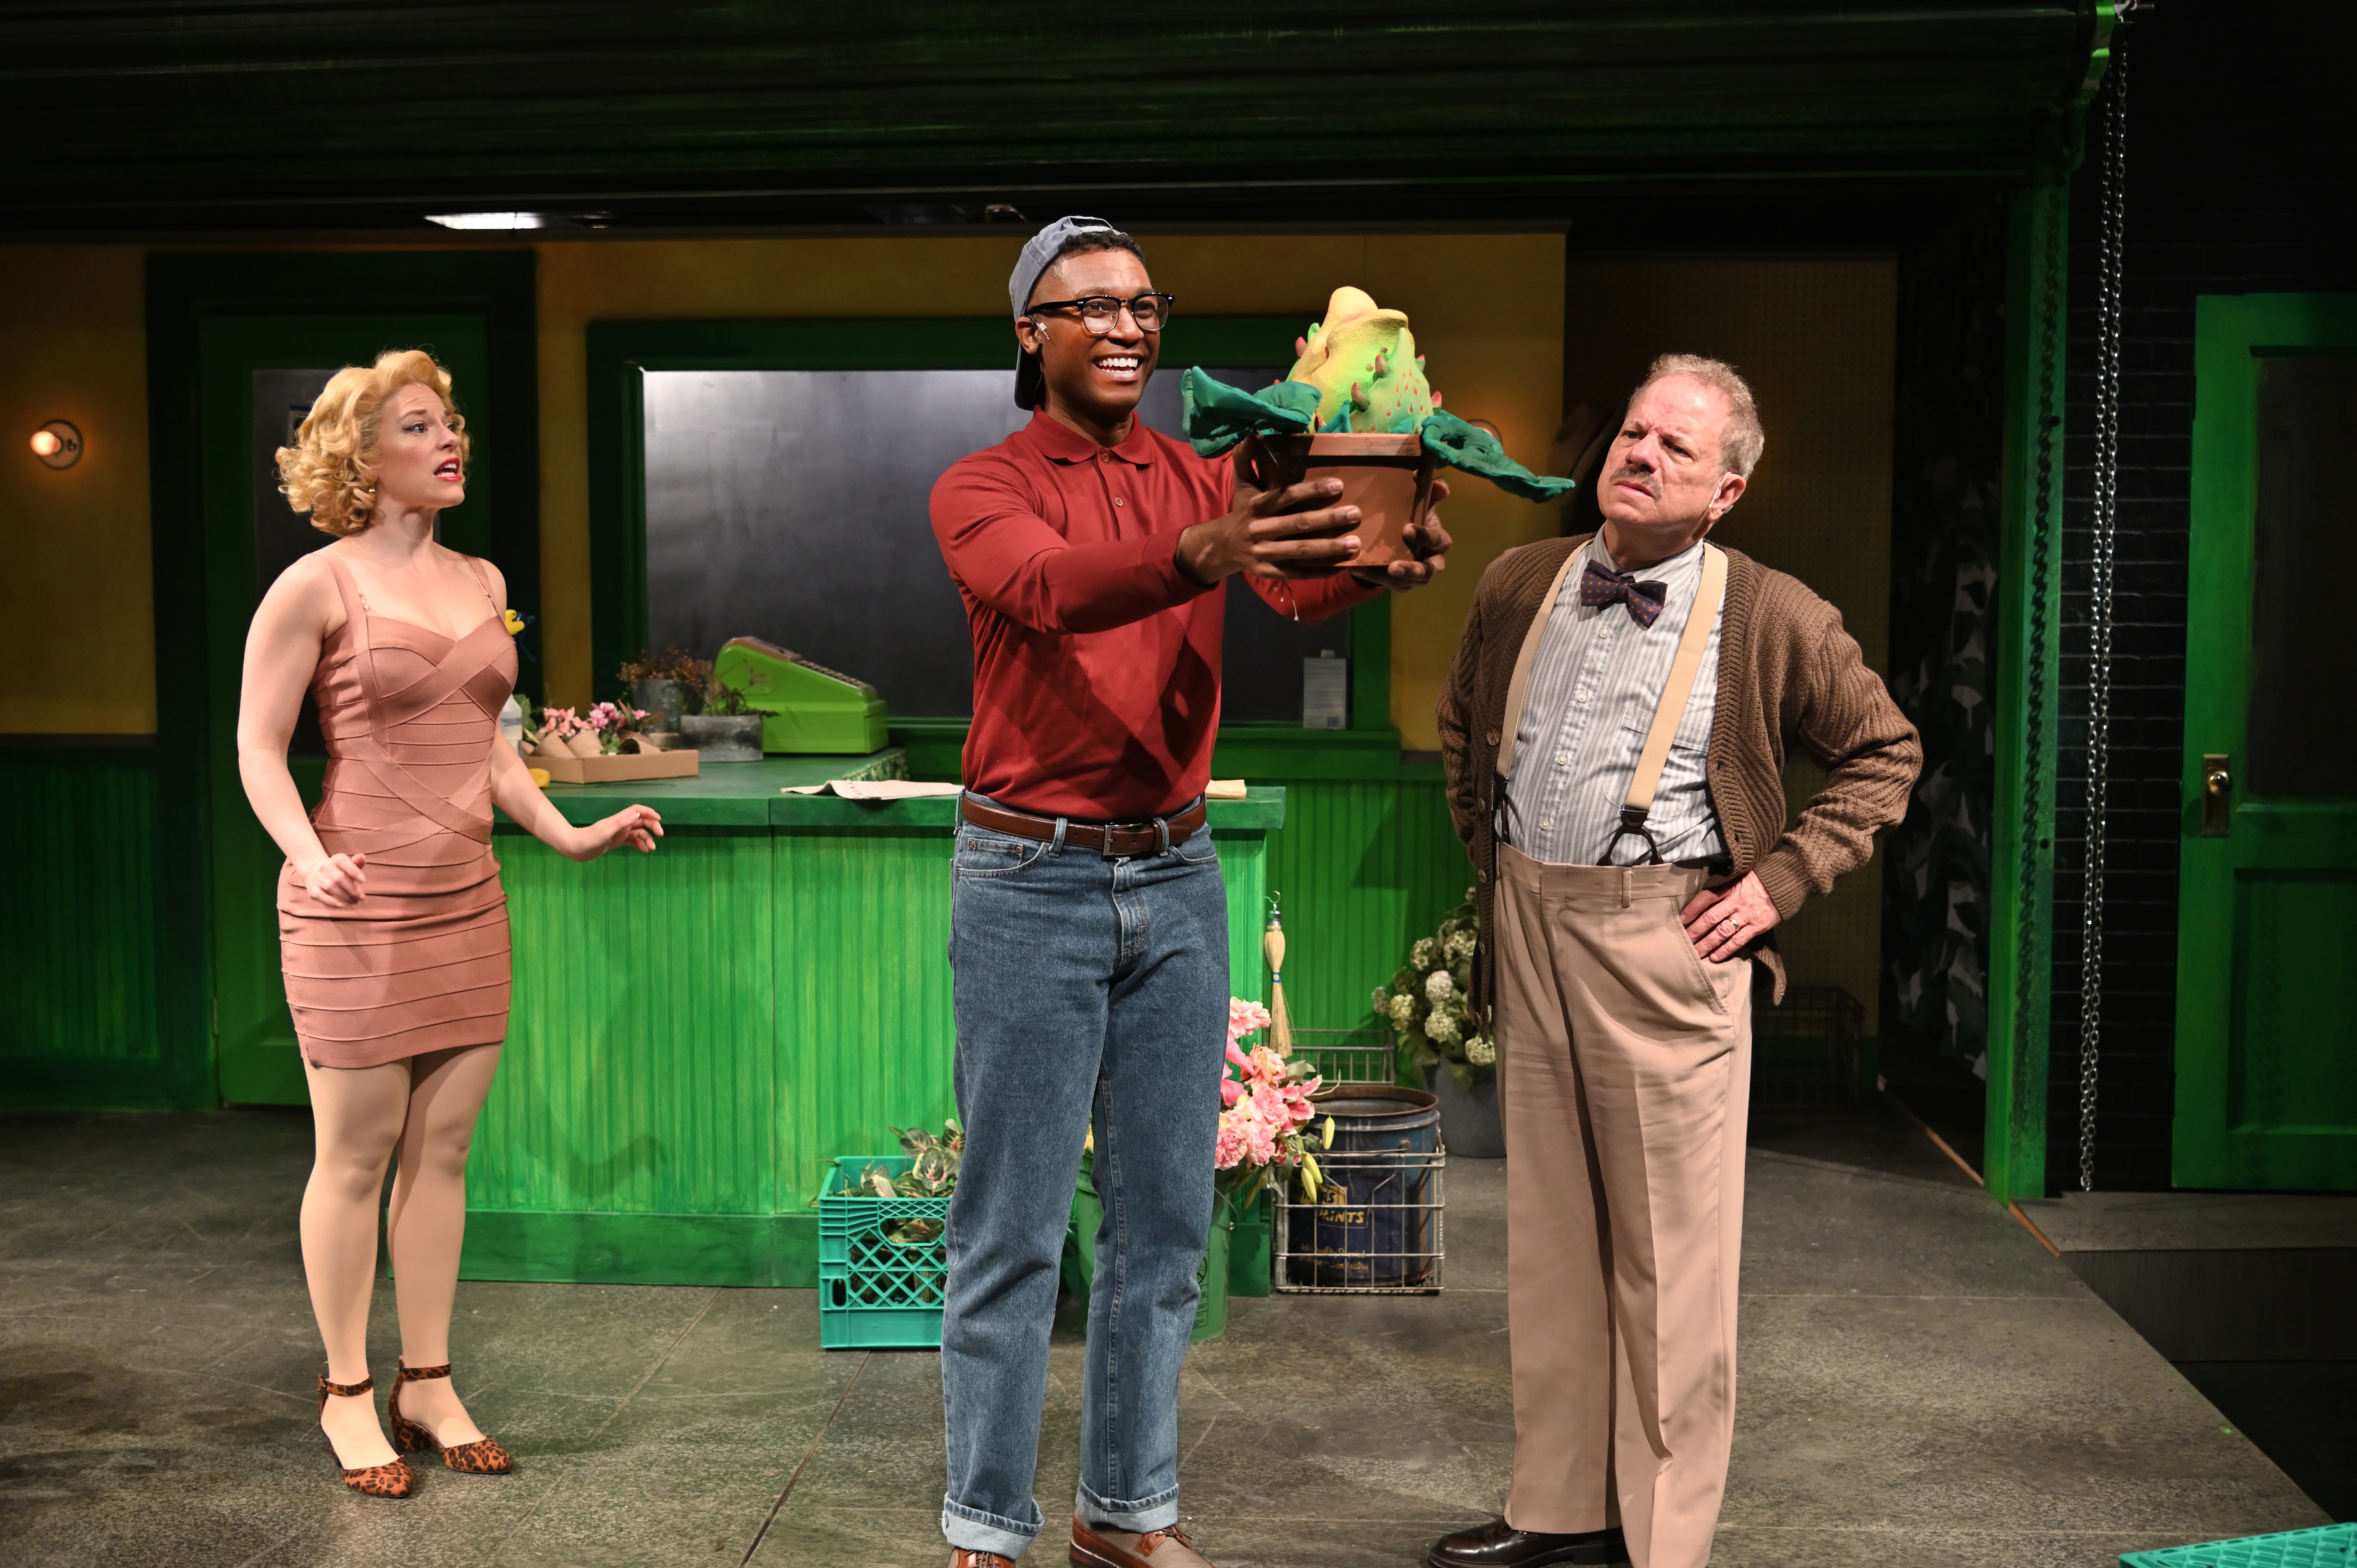 Rebecca Gibel (left) as Audrey, Jude Sandy as Seymour, and Stephen Berenson as Mr. Mushnik in Trinity Rep's production of